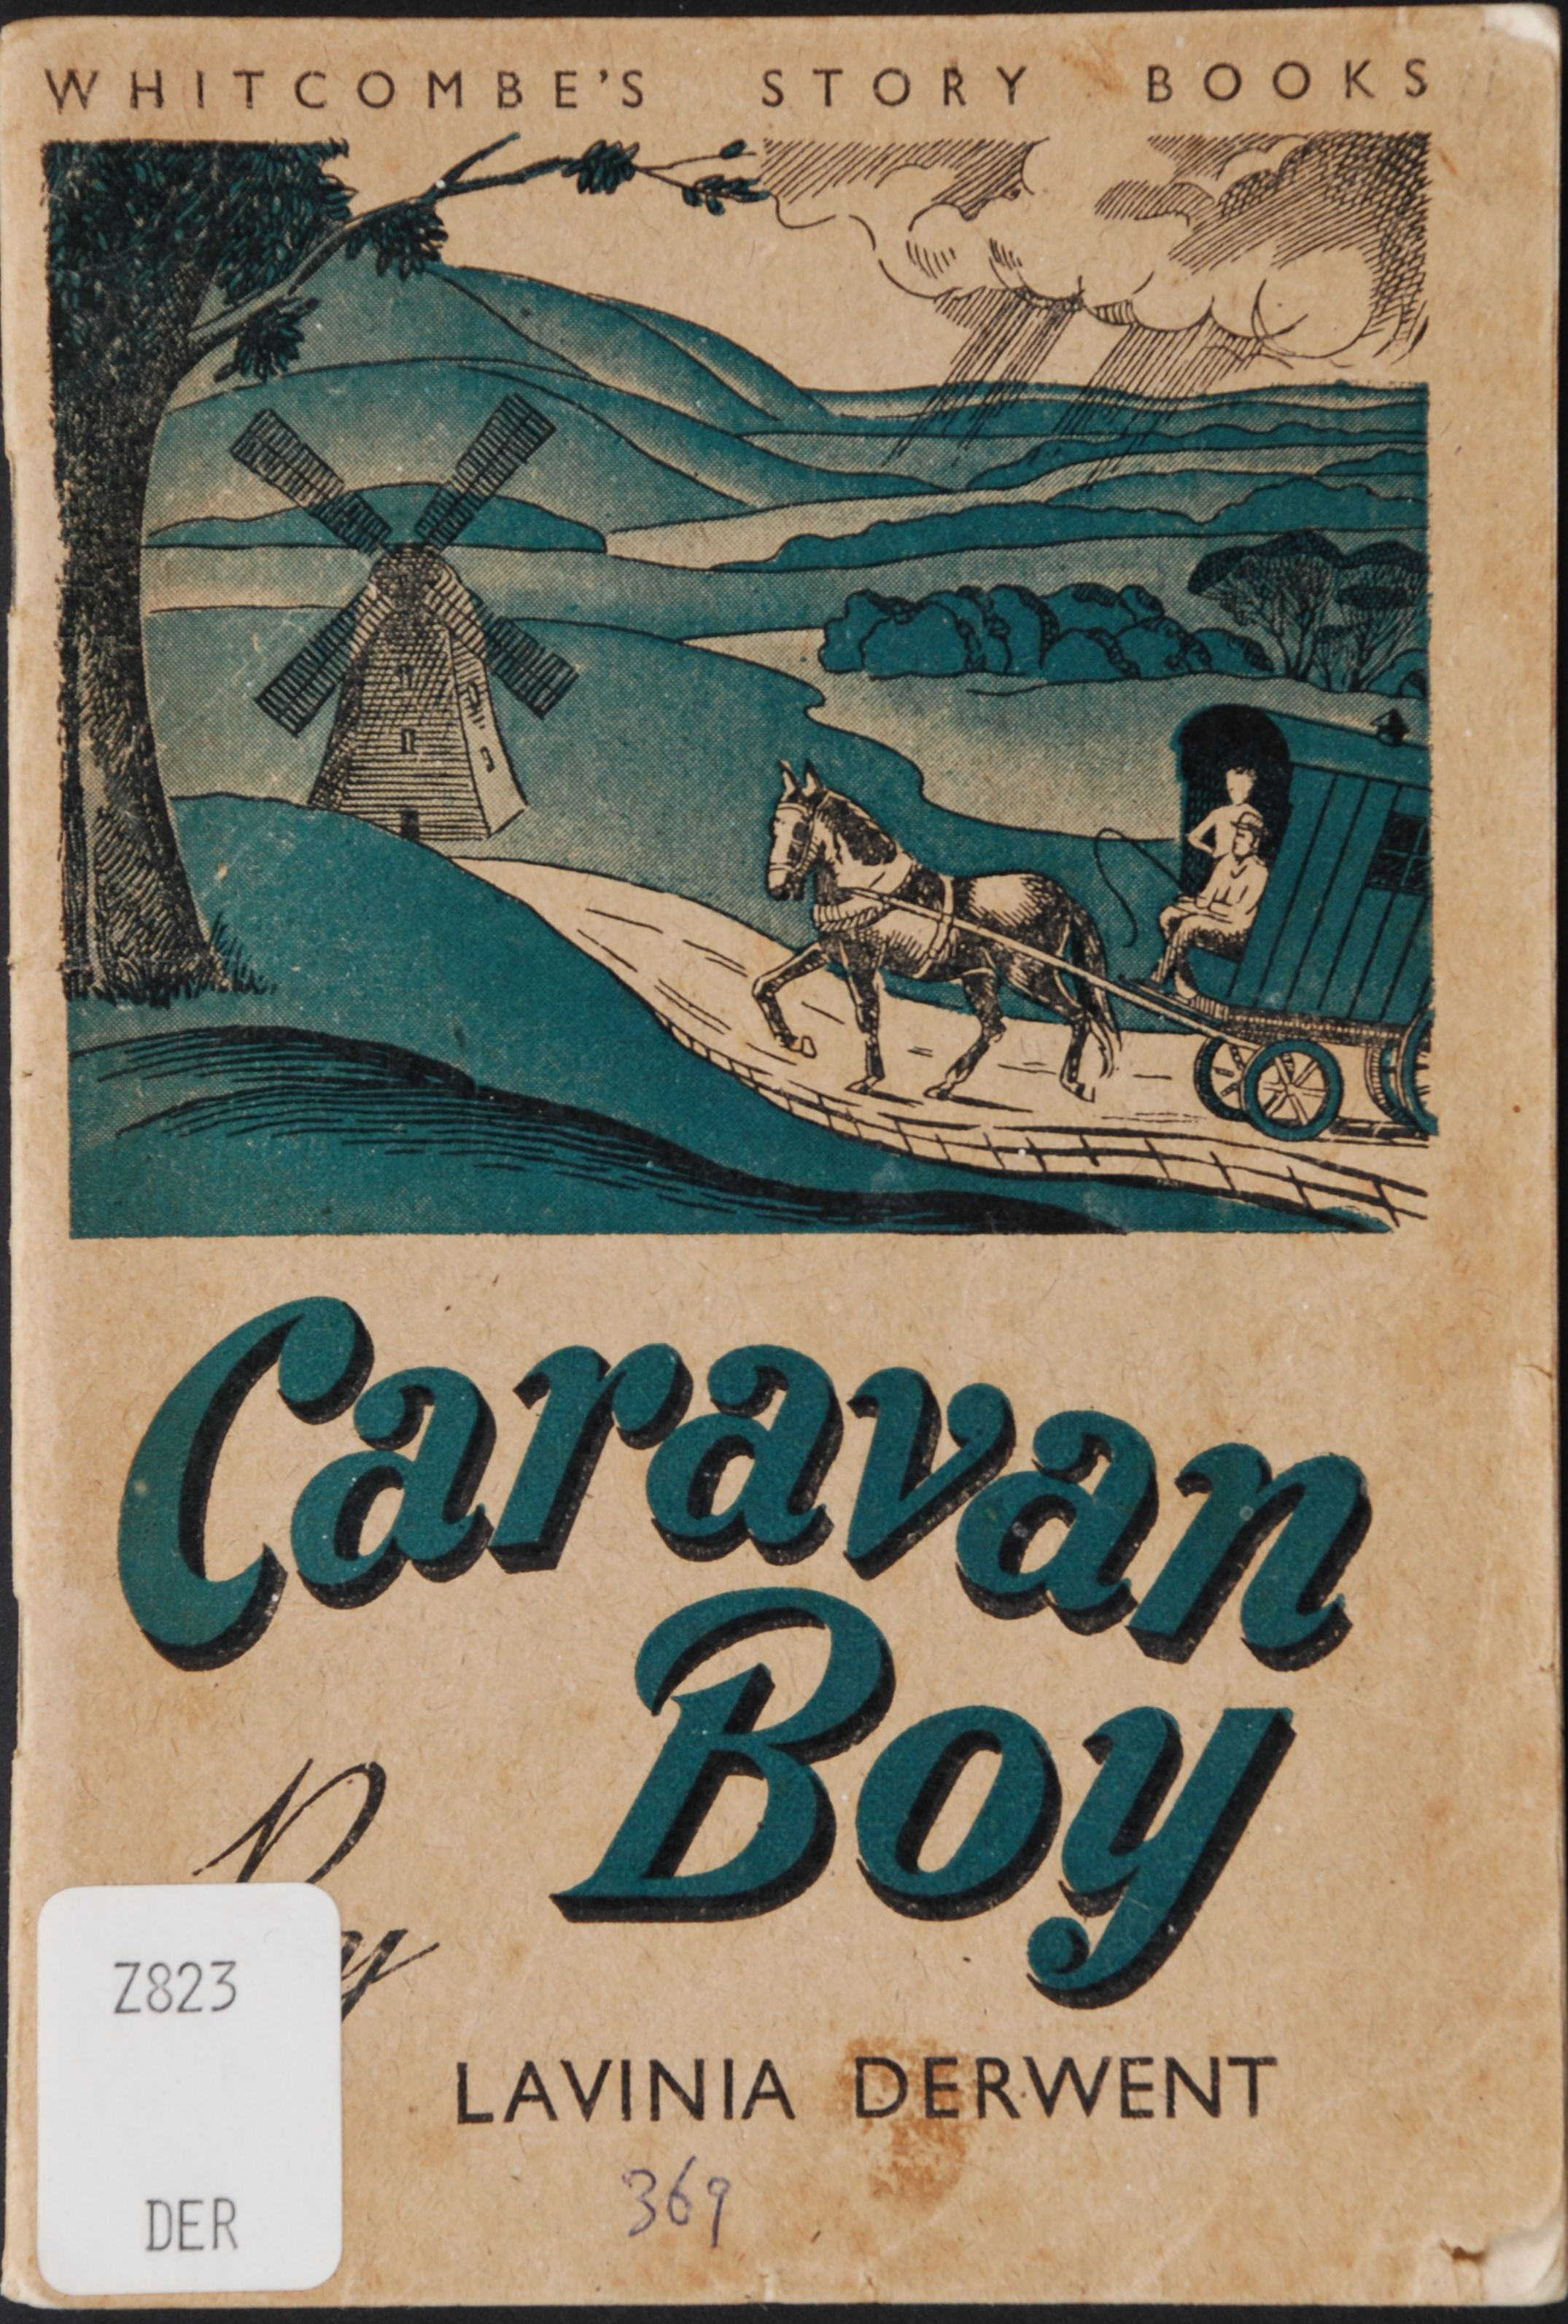 Lavinia Derwent. The caravan boy. Illustrated by Lorna A. Steele. Christchurch [N.Z.]: Whitcombe and Tombs [1959].